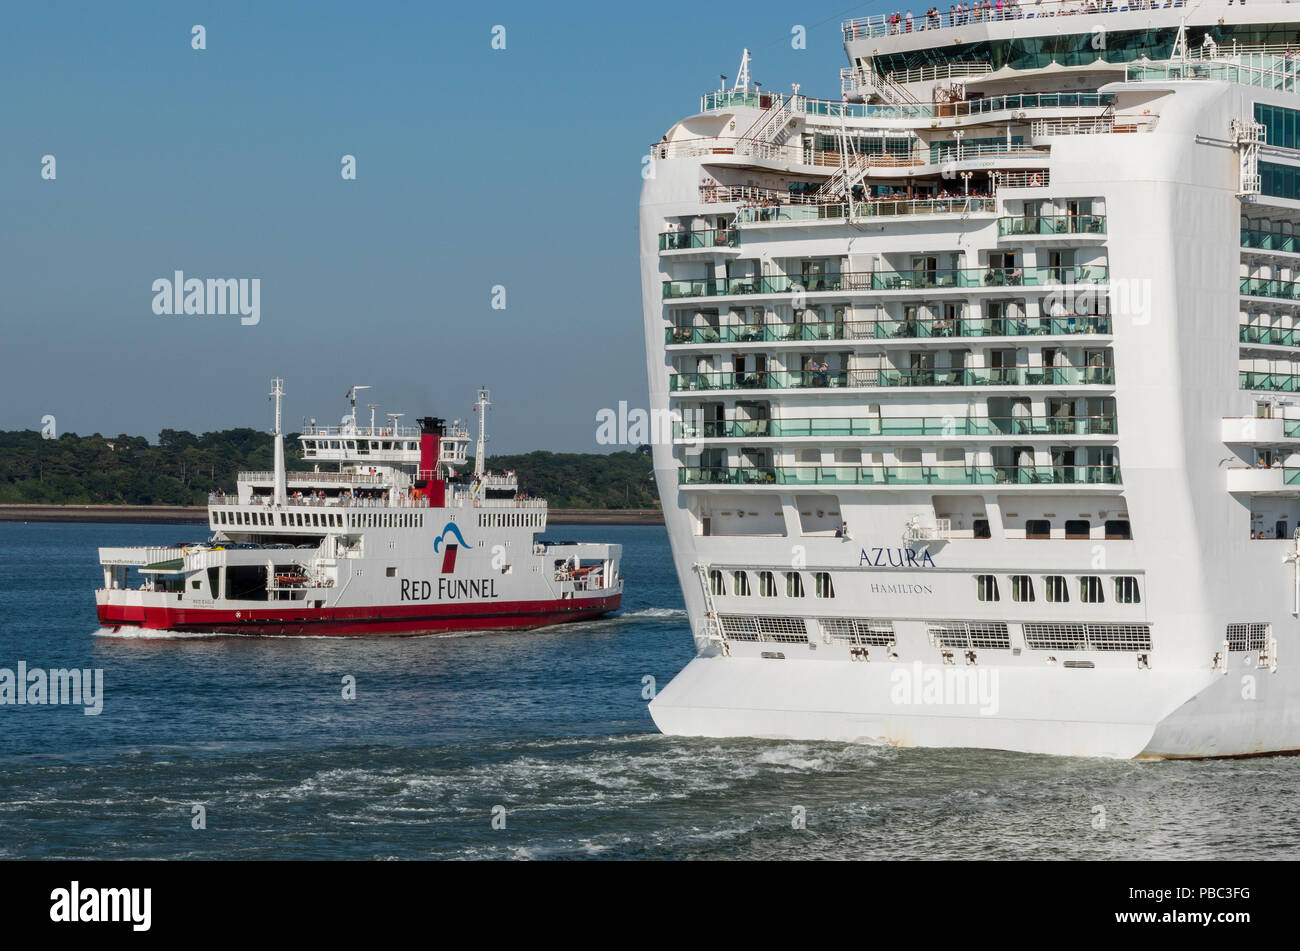 the isle of wight ferry passing the giant p and o cruise liner azura in Southampton water southampton docks in the port of Southampton. - Stock Image